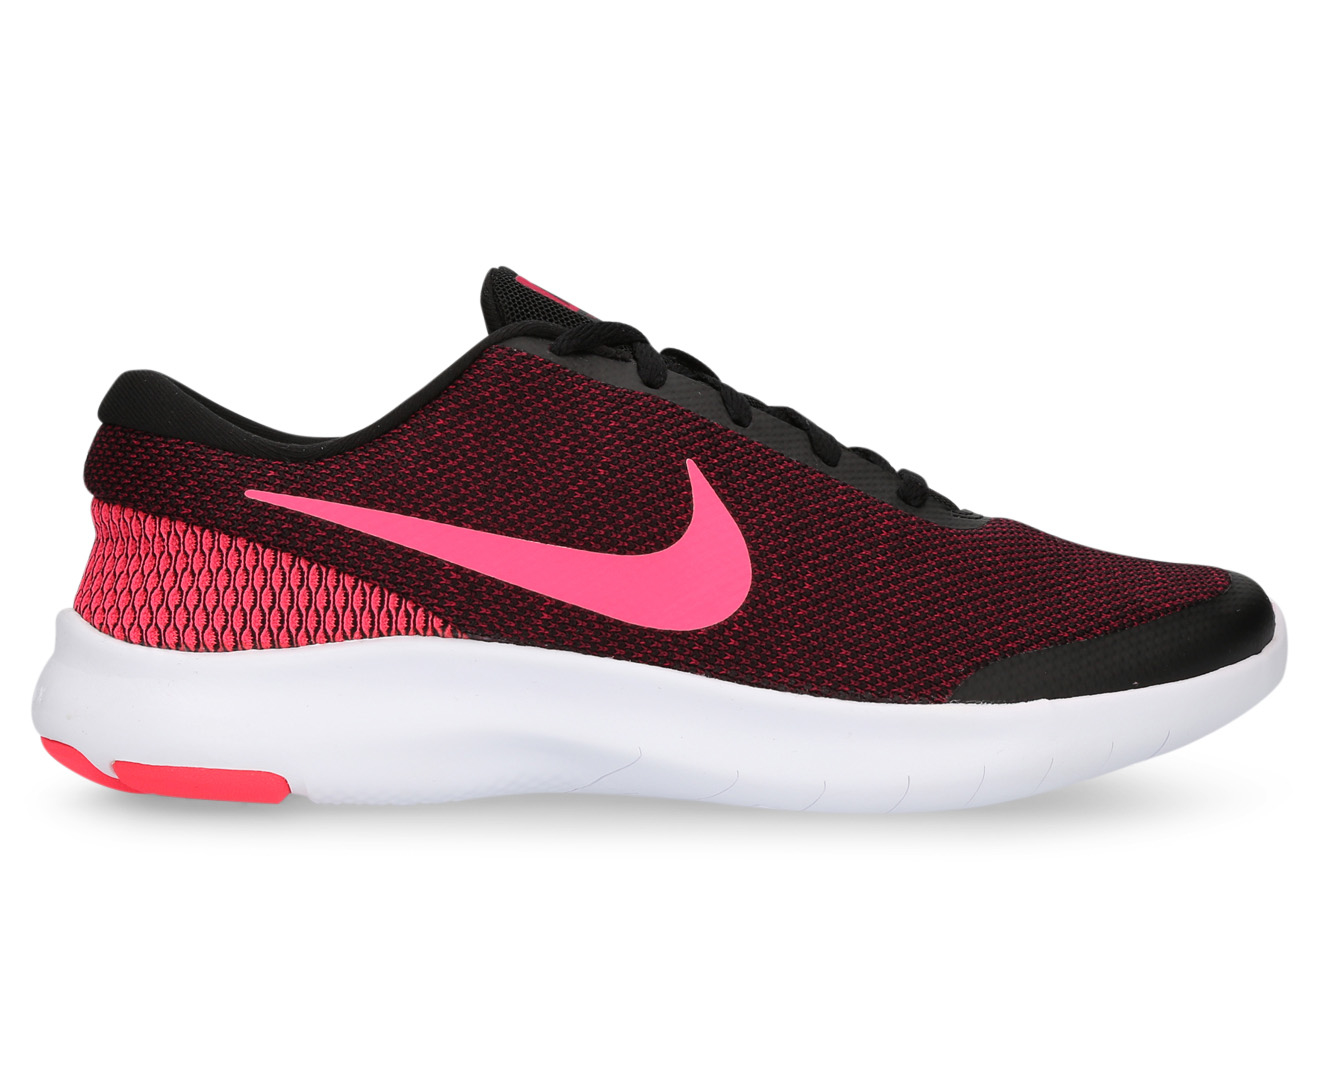 30f364ad78c52 Nike Women s Flex Experience RN 7 Shoe - Black Racer Pink Wild Cherry